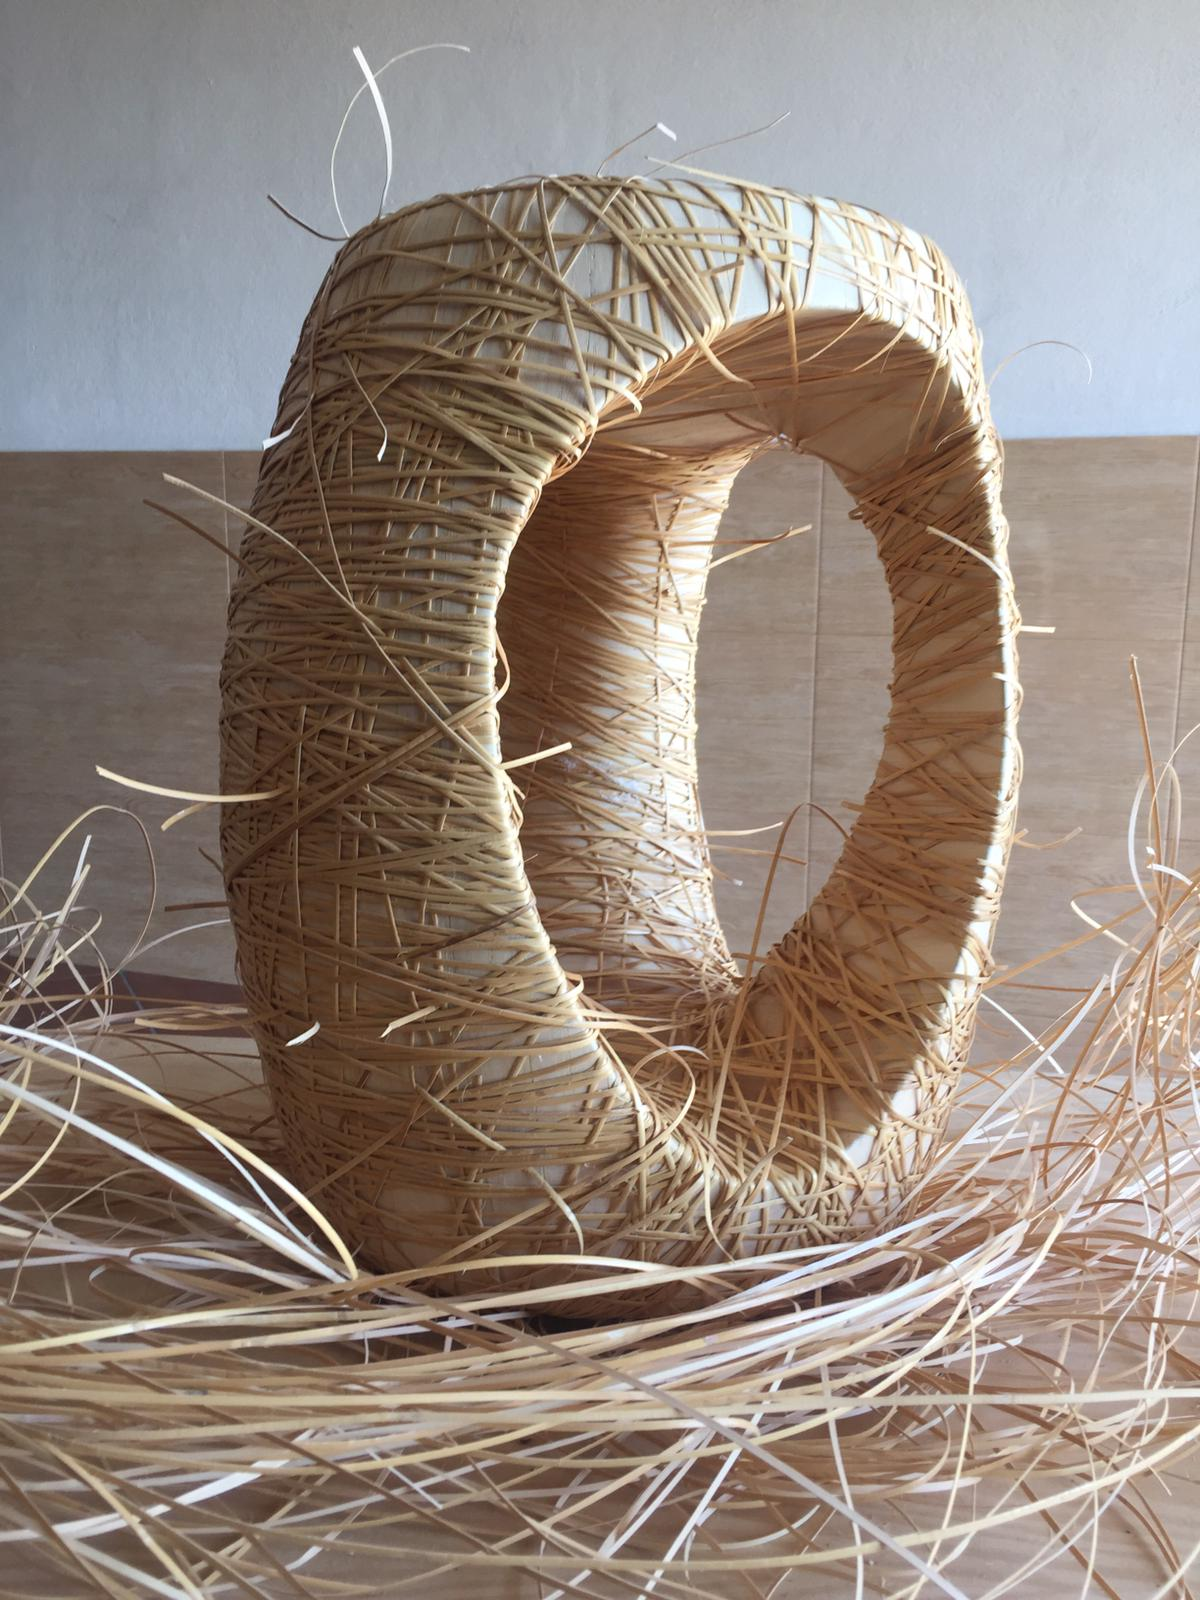 mabela Mabela, the Crafts and Arts Natural Straw Fist days Mabela stool creation